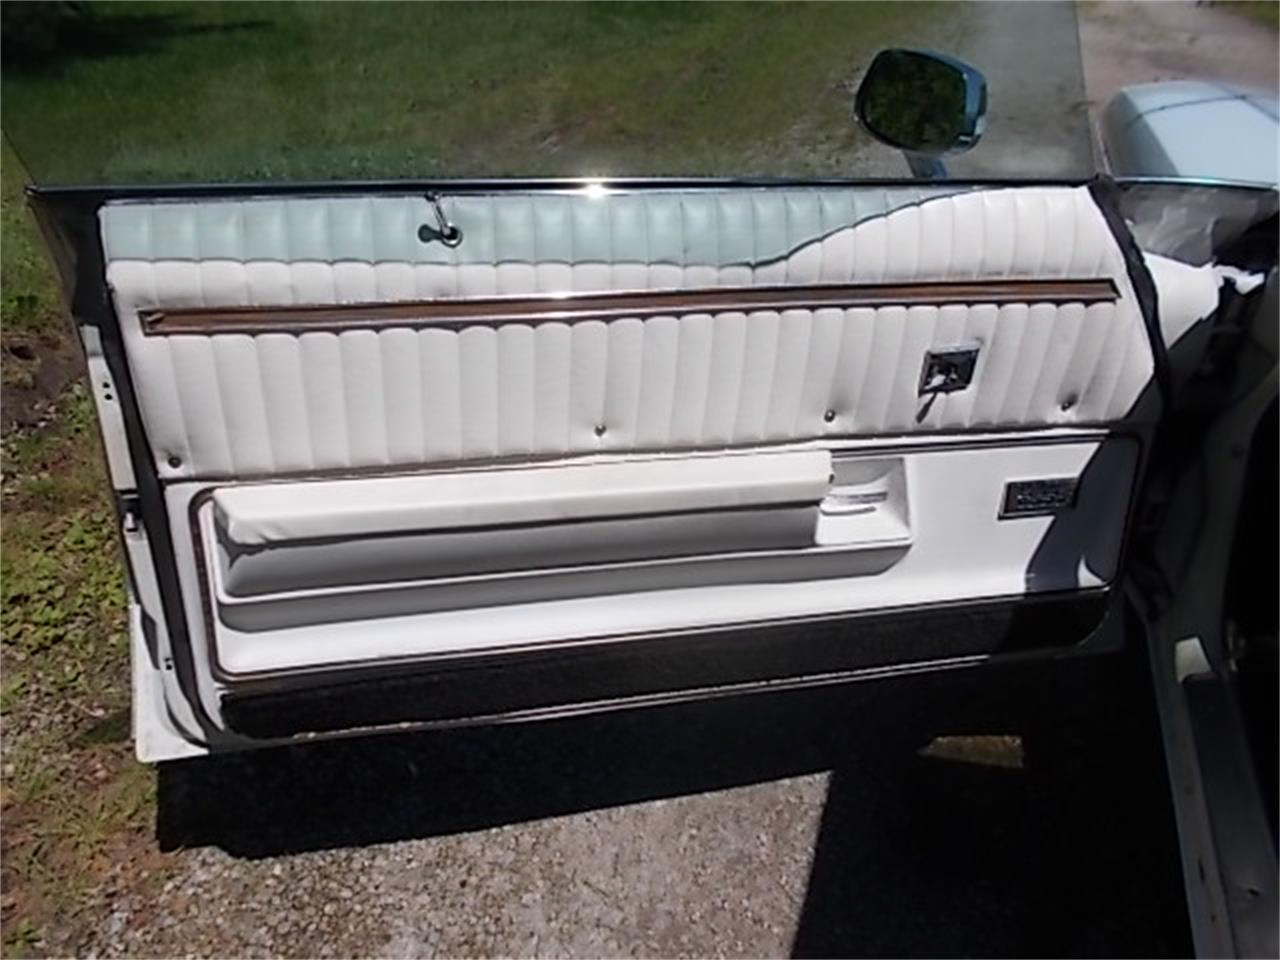 Large Picture of Classic '72 Oldsmobile Delta 88 Royale located in Ohio - $5,500.00 - QB97